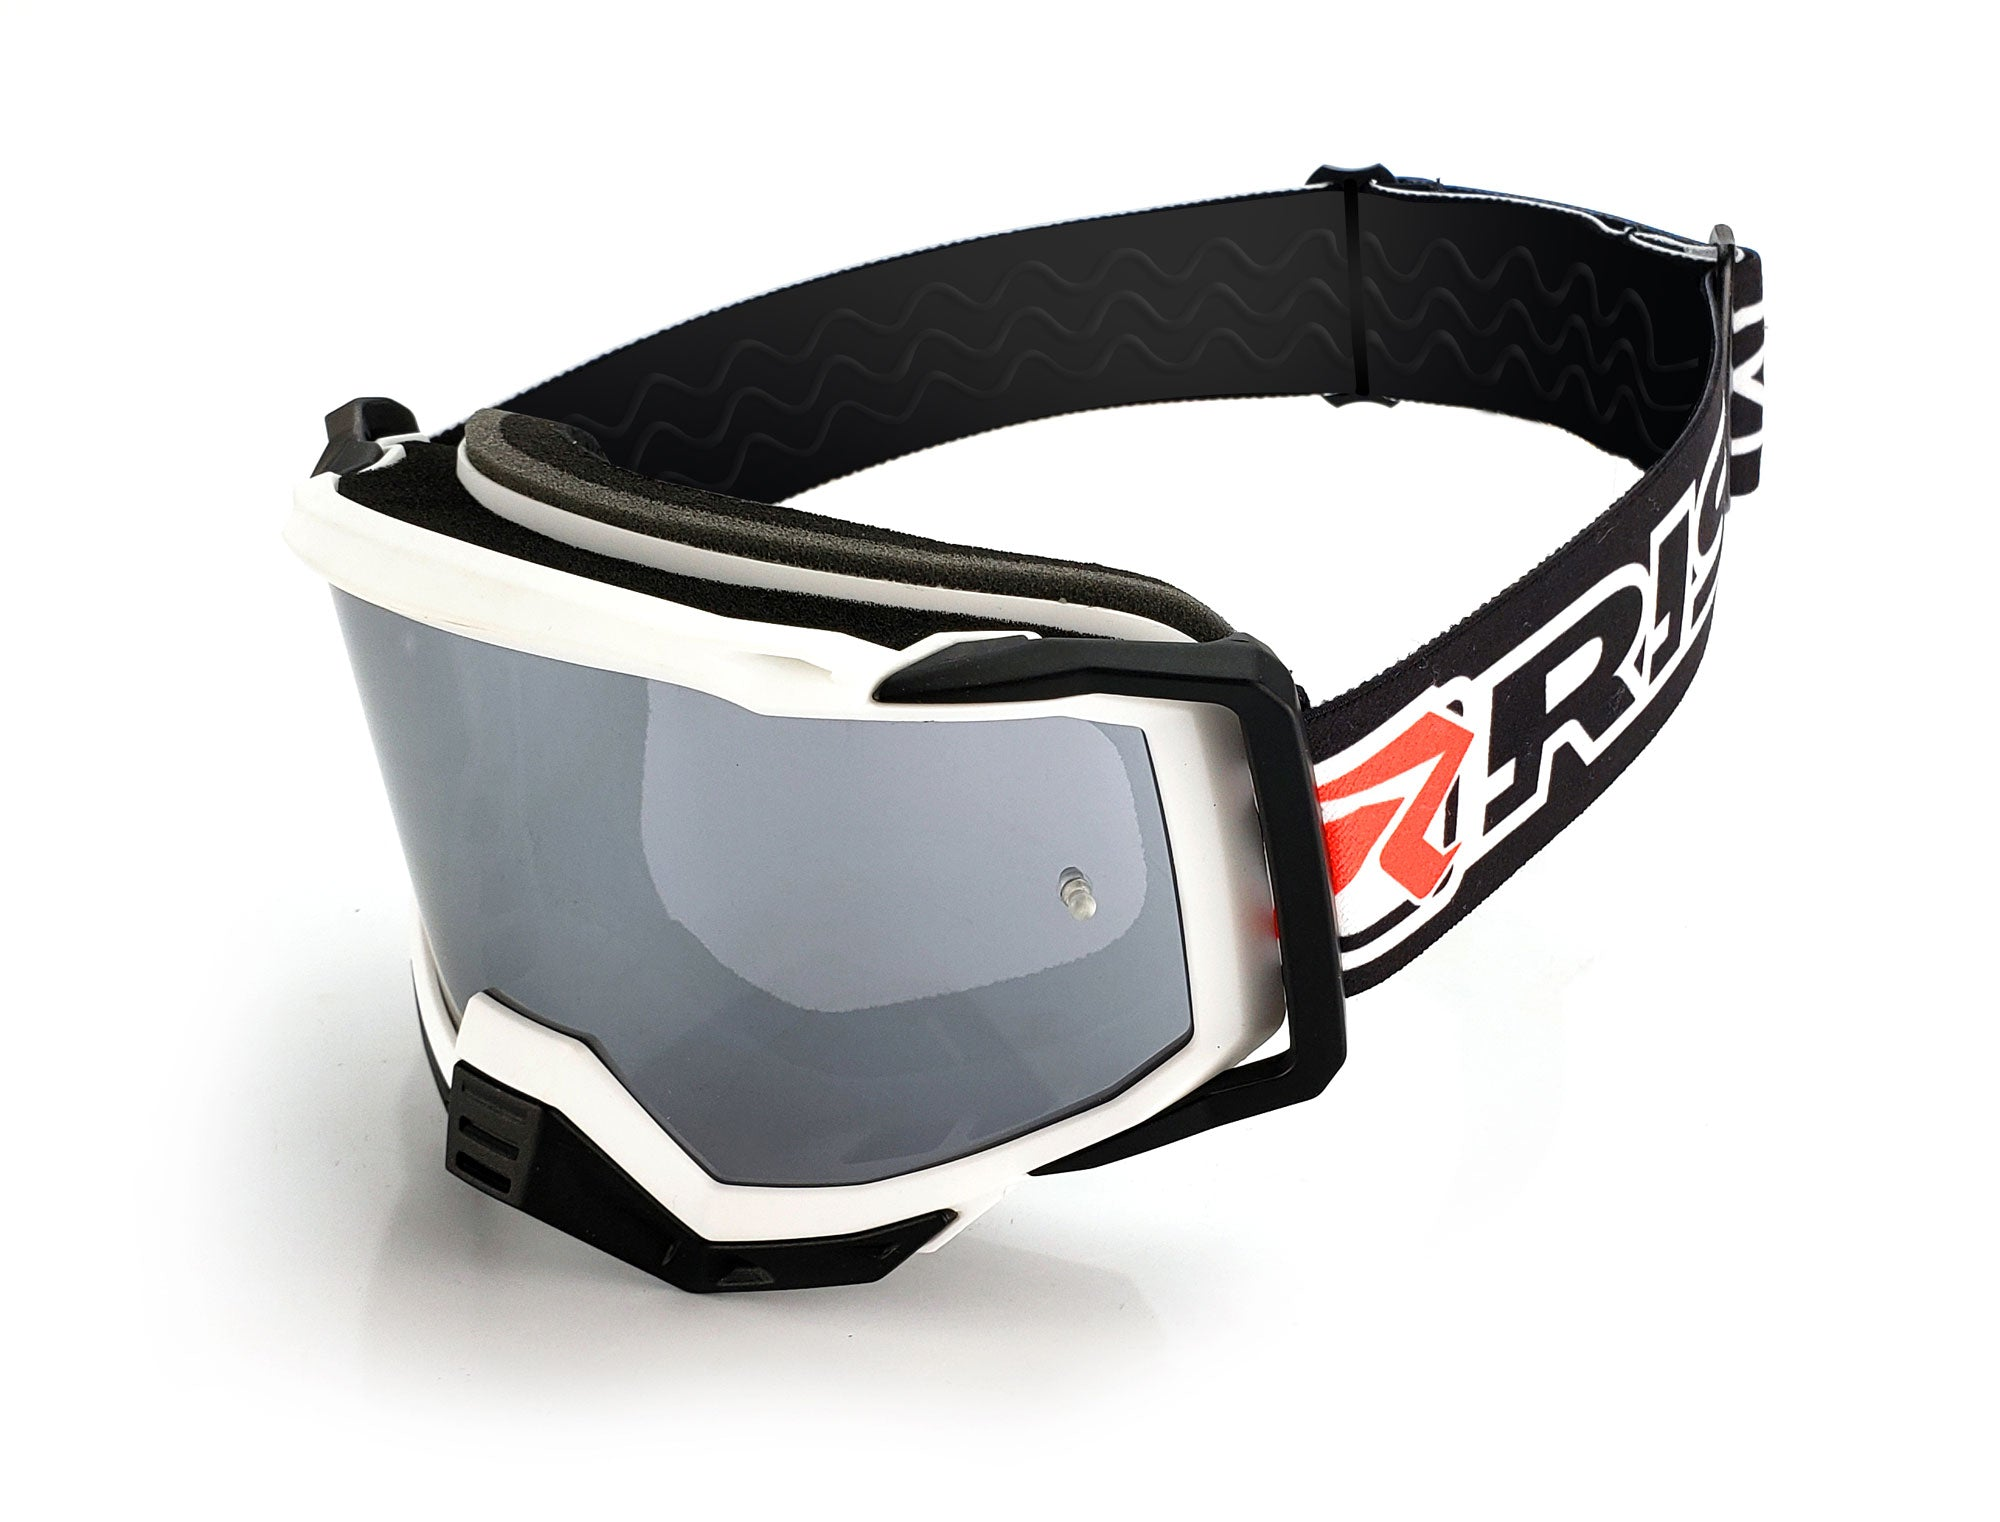 J.A.C. MX Tear-Off Goggle by Risk Racing